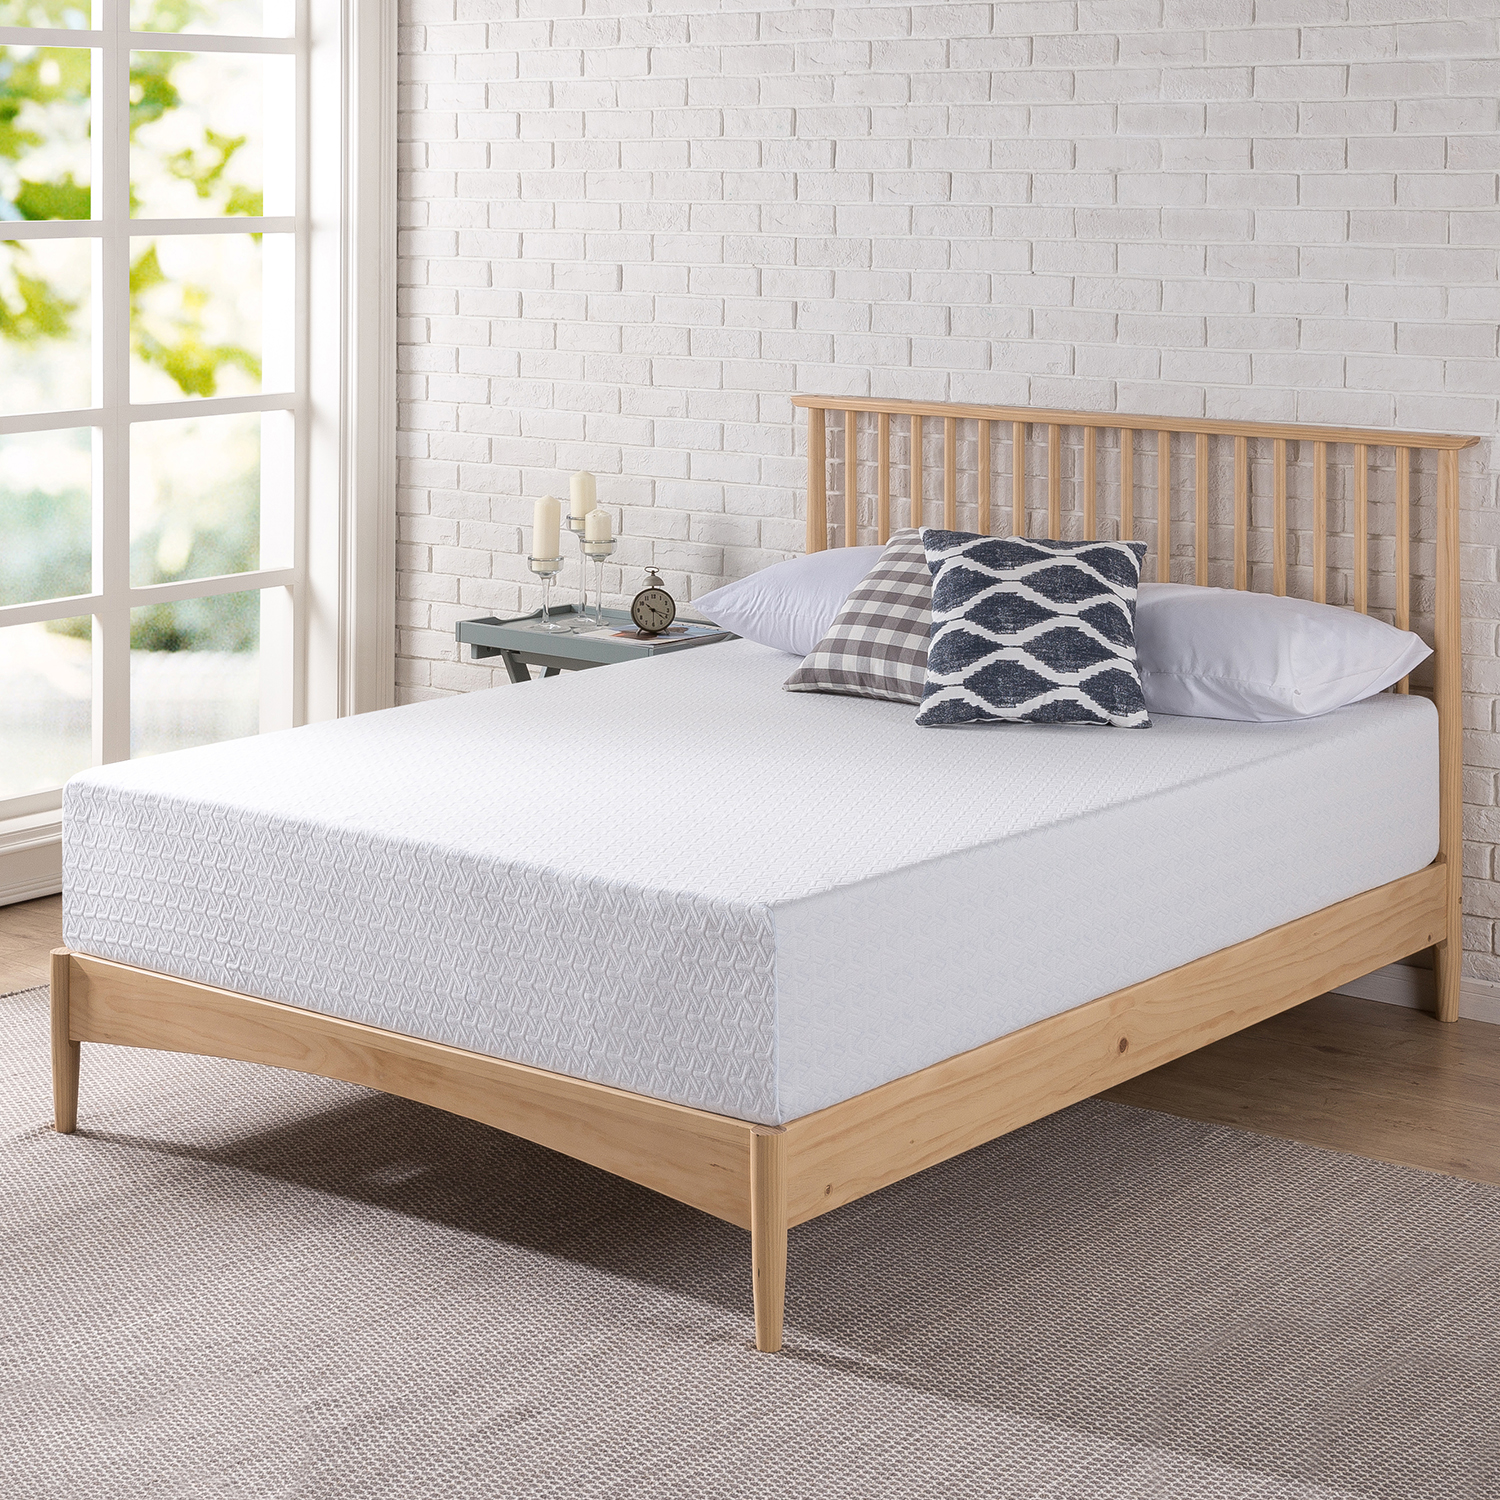 "Spa Sensations 11"" Gel Memory Foam Mattress"